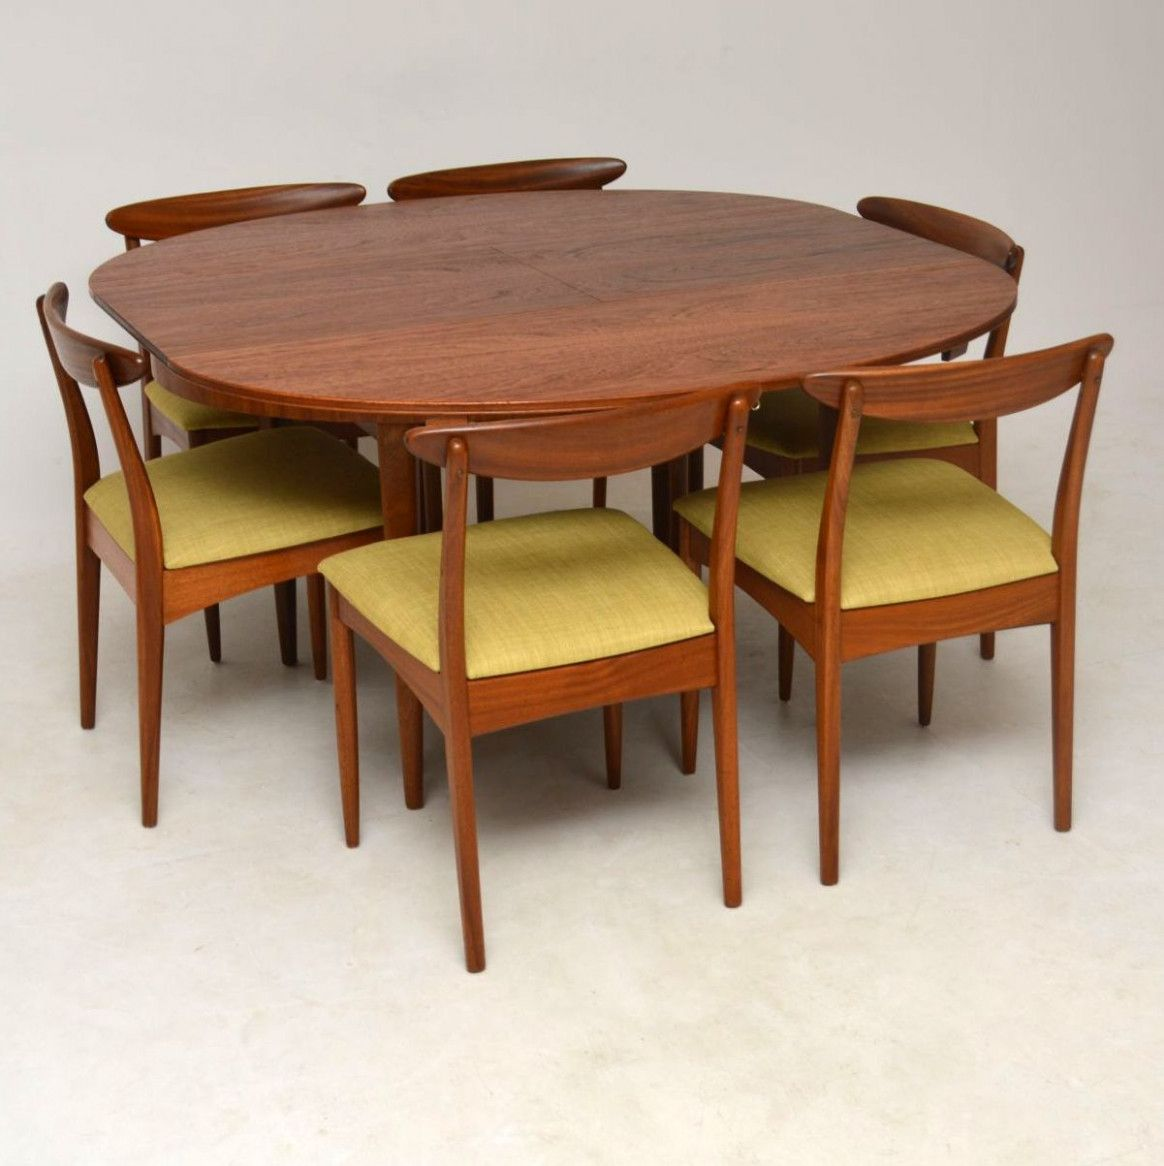 9 S Teak Dining Table And 9 Chairs By Greaves Thomas Vintage